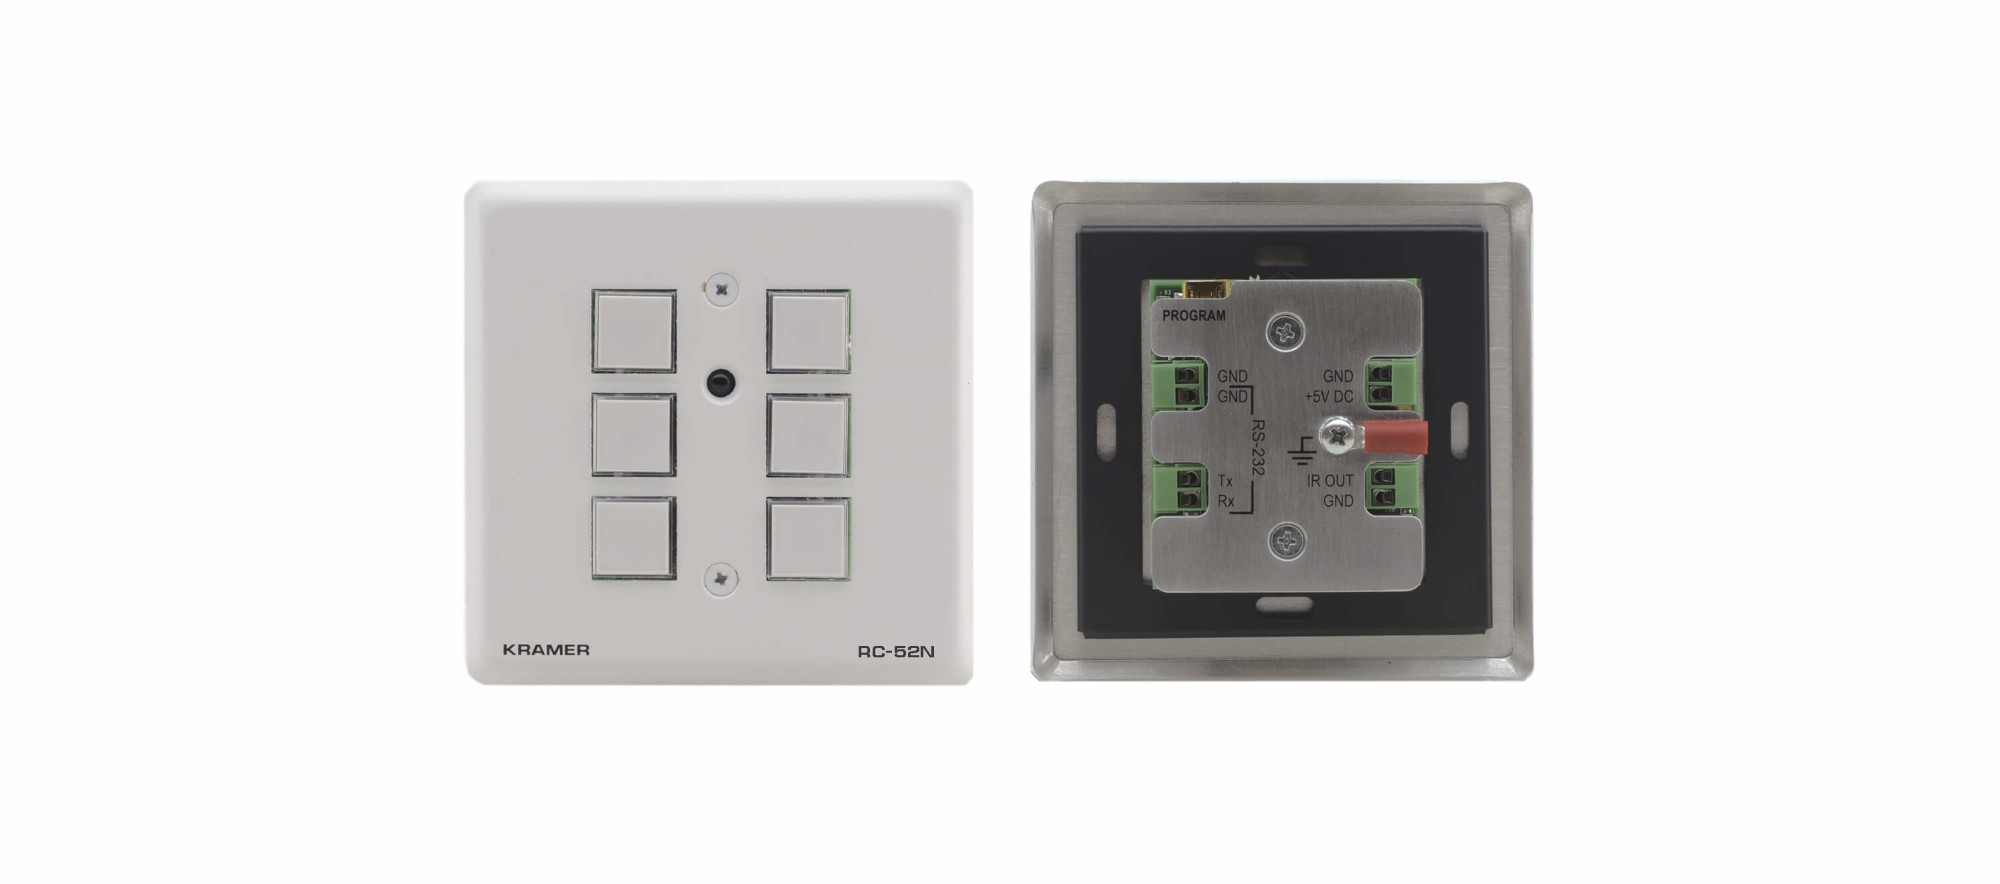 Kramer Electronics RC-52N Wired Press buttons Grey,White remote control